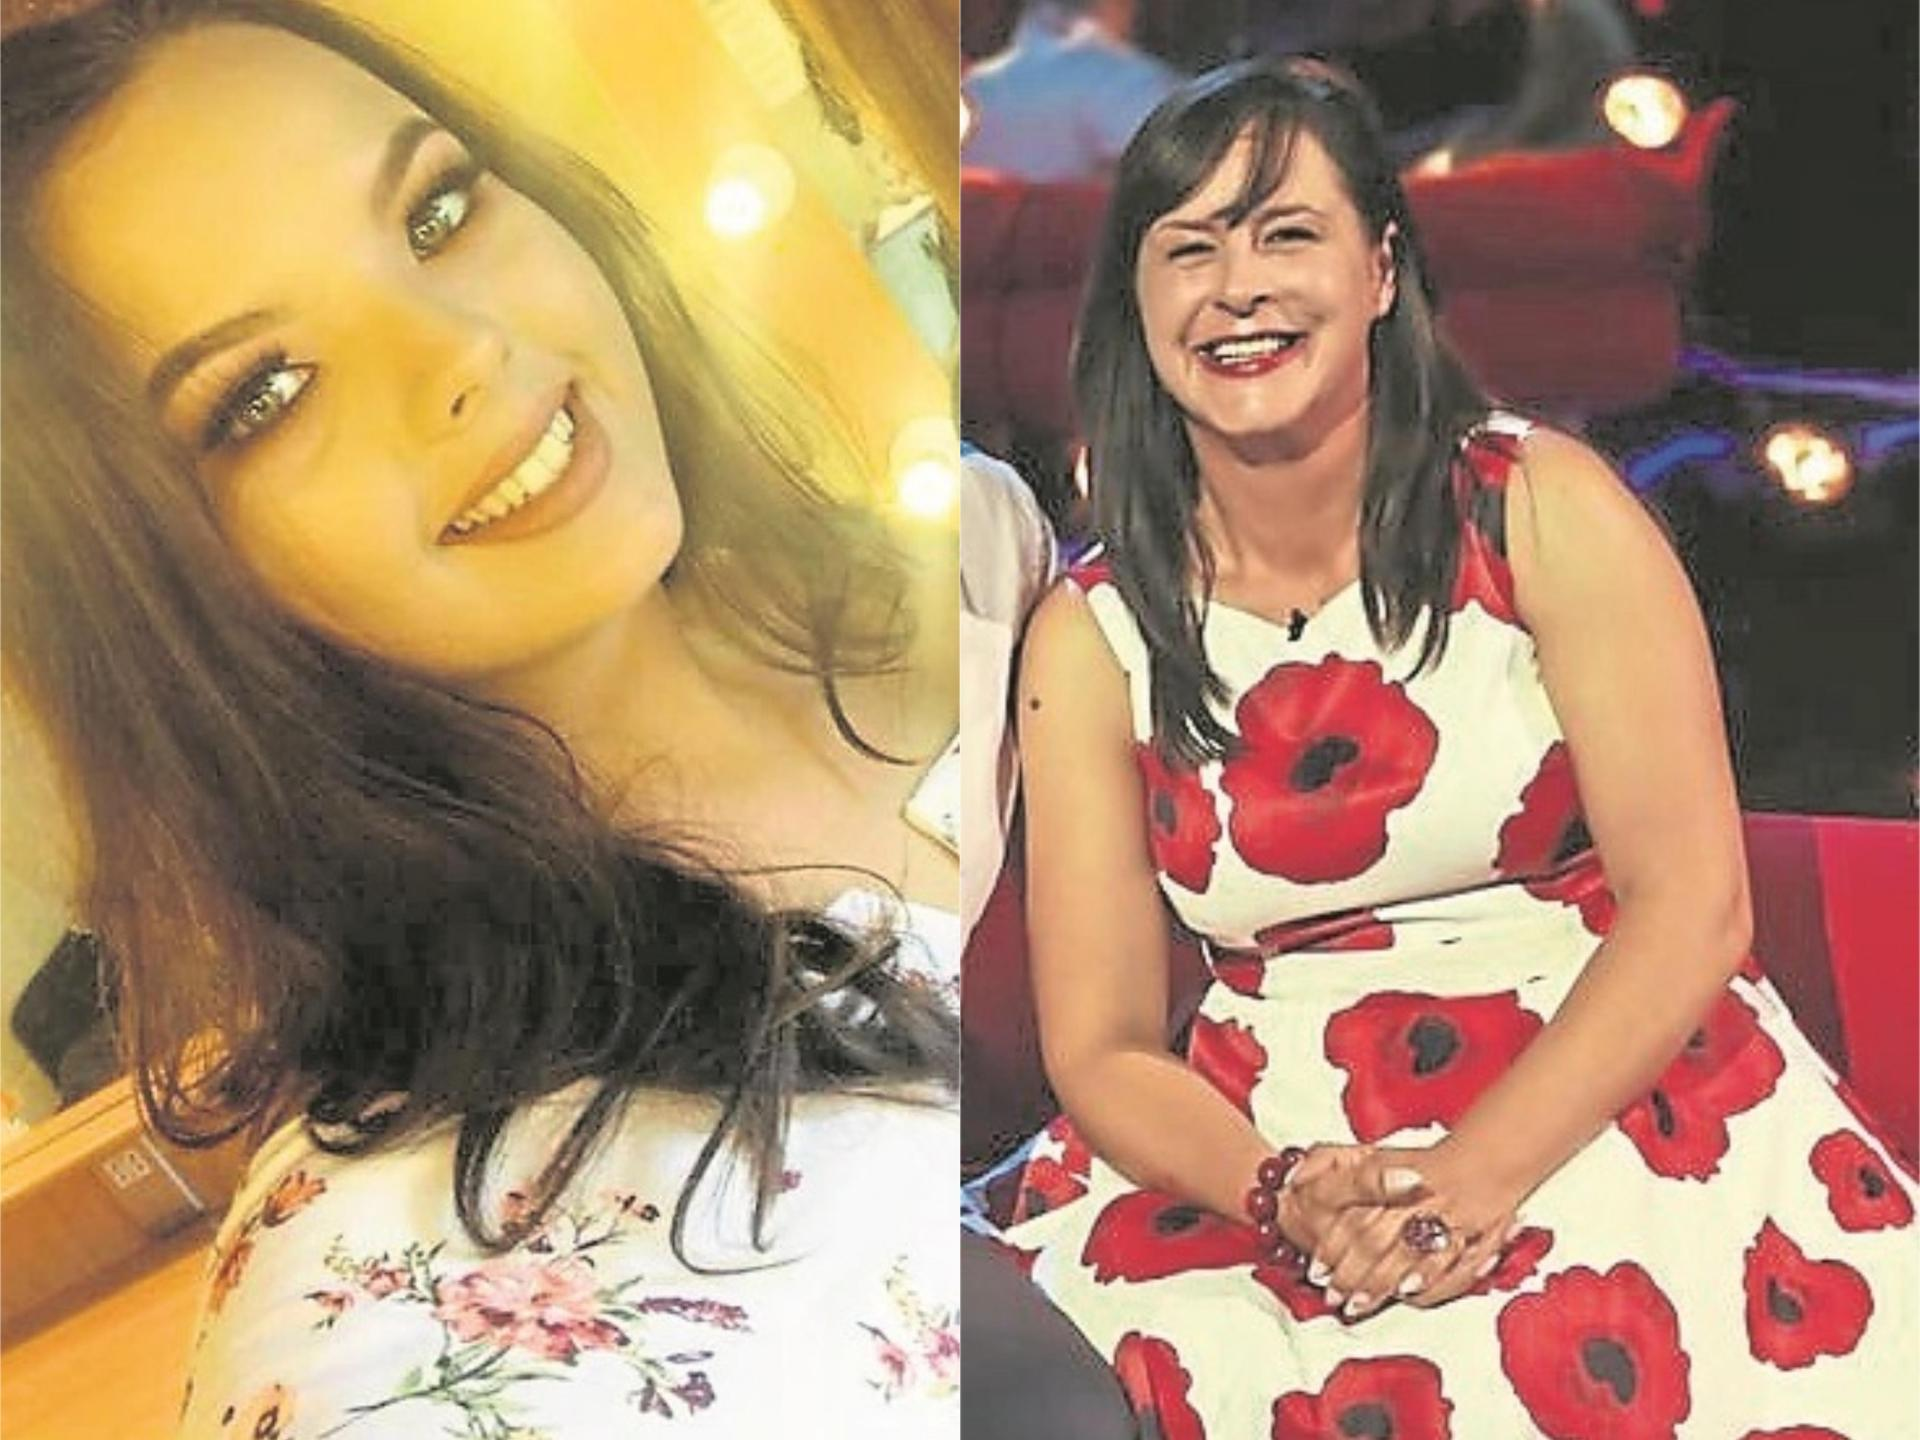 Newbridge dating site - free online dating in Newbridge (Ireland)